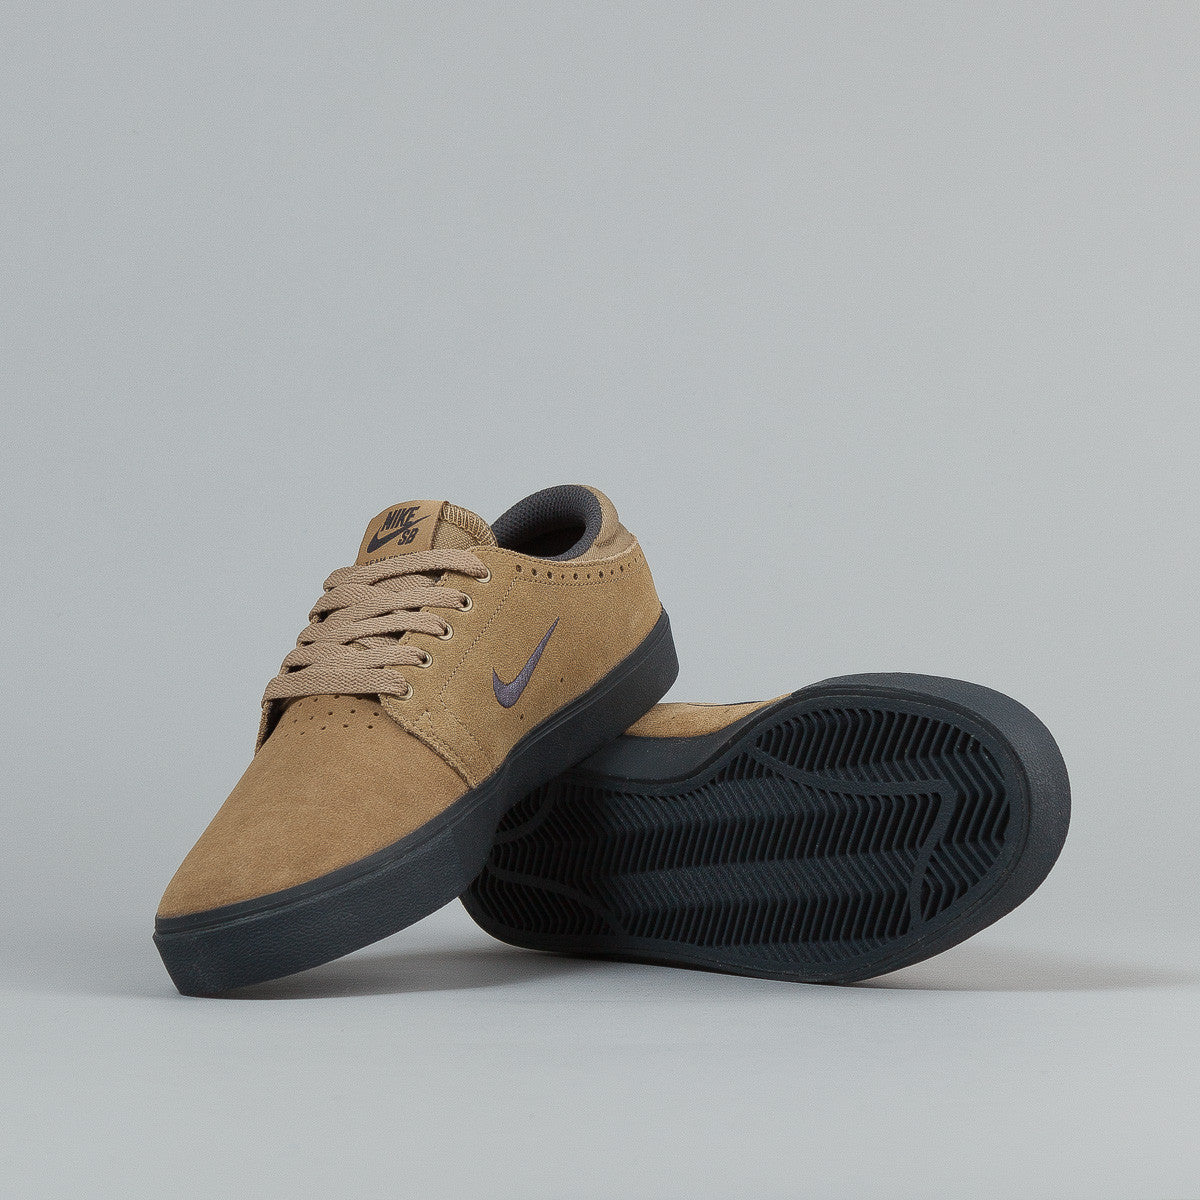 Nike SB Team Edition 2 Shoes - Filbert / Anthracite